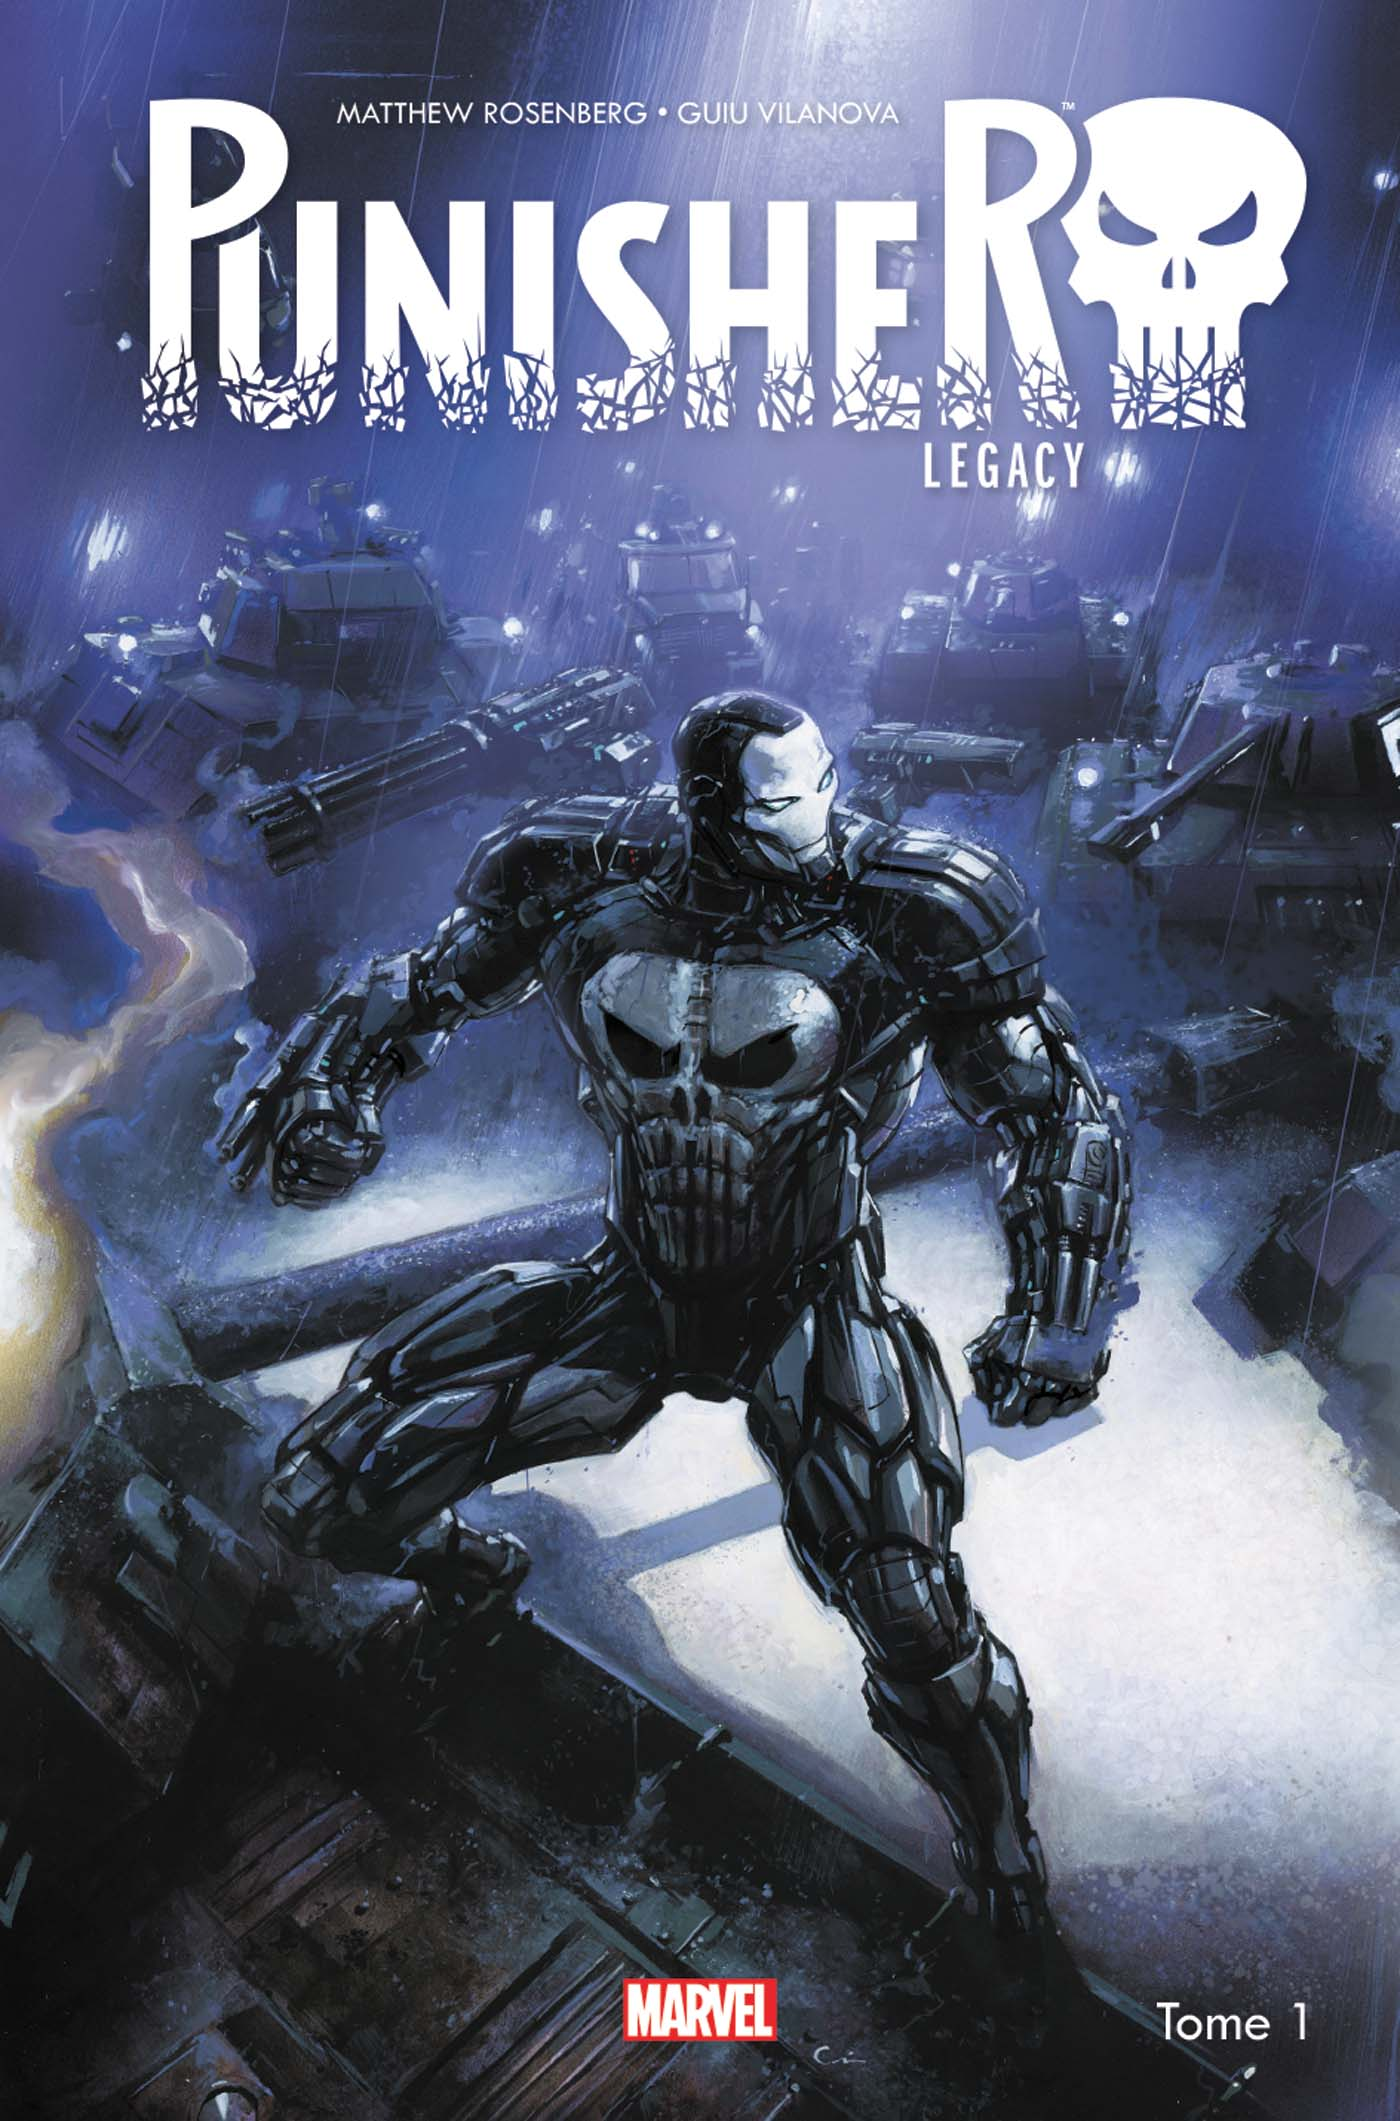 Punisher Legacy 1 - Tome 1